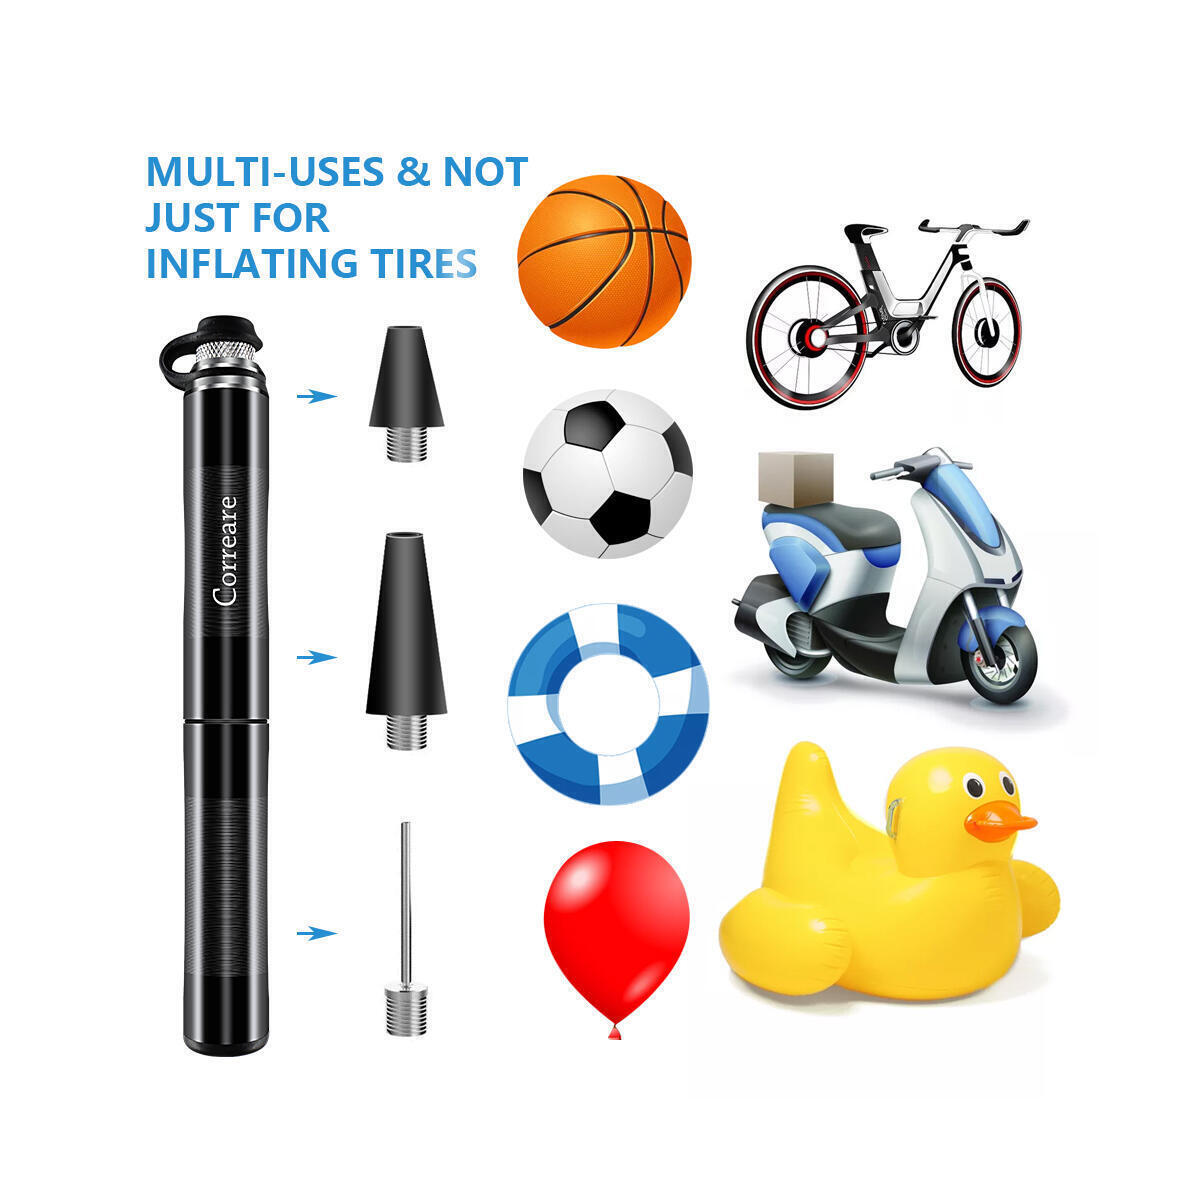 correare Mini Bike Pump with Portable Frame Fits Presta & Schrader,No Valve Changing Needed, 160PSI,Mini Bicycle Tire Pump for Road and Mountain Bikes